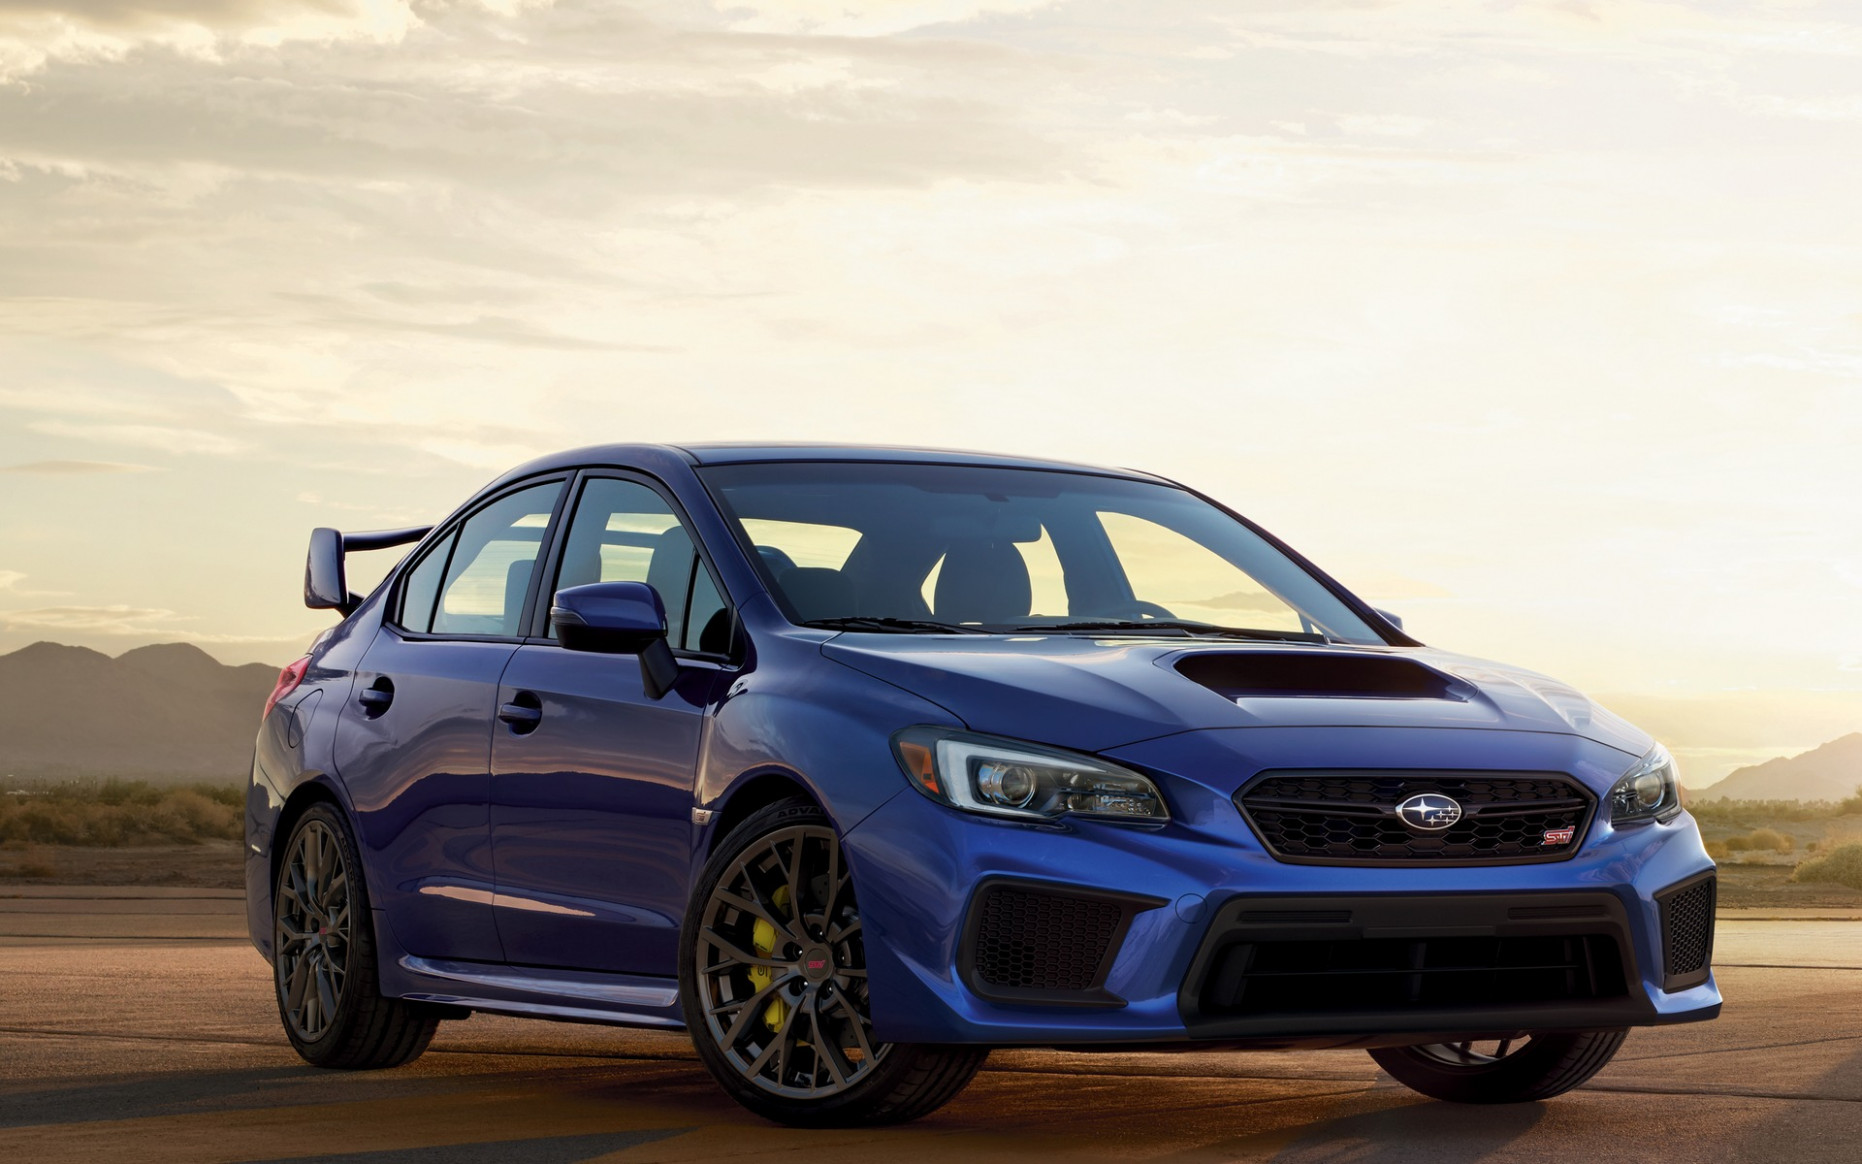 Test drive a 11 Subaru WRX near Kitchener - Pfaff Subaru